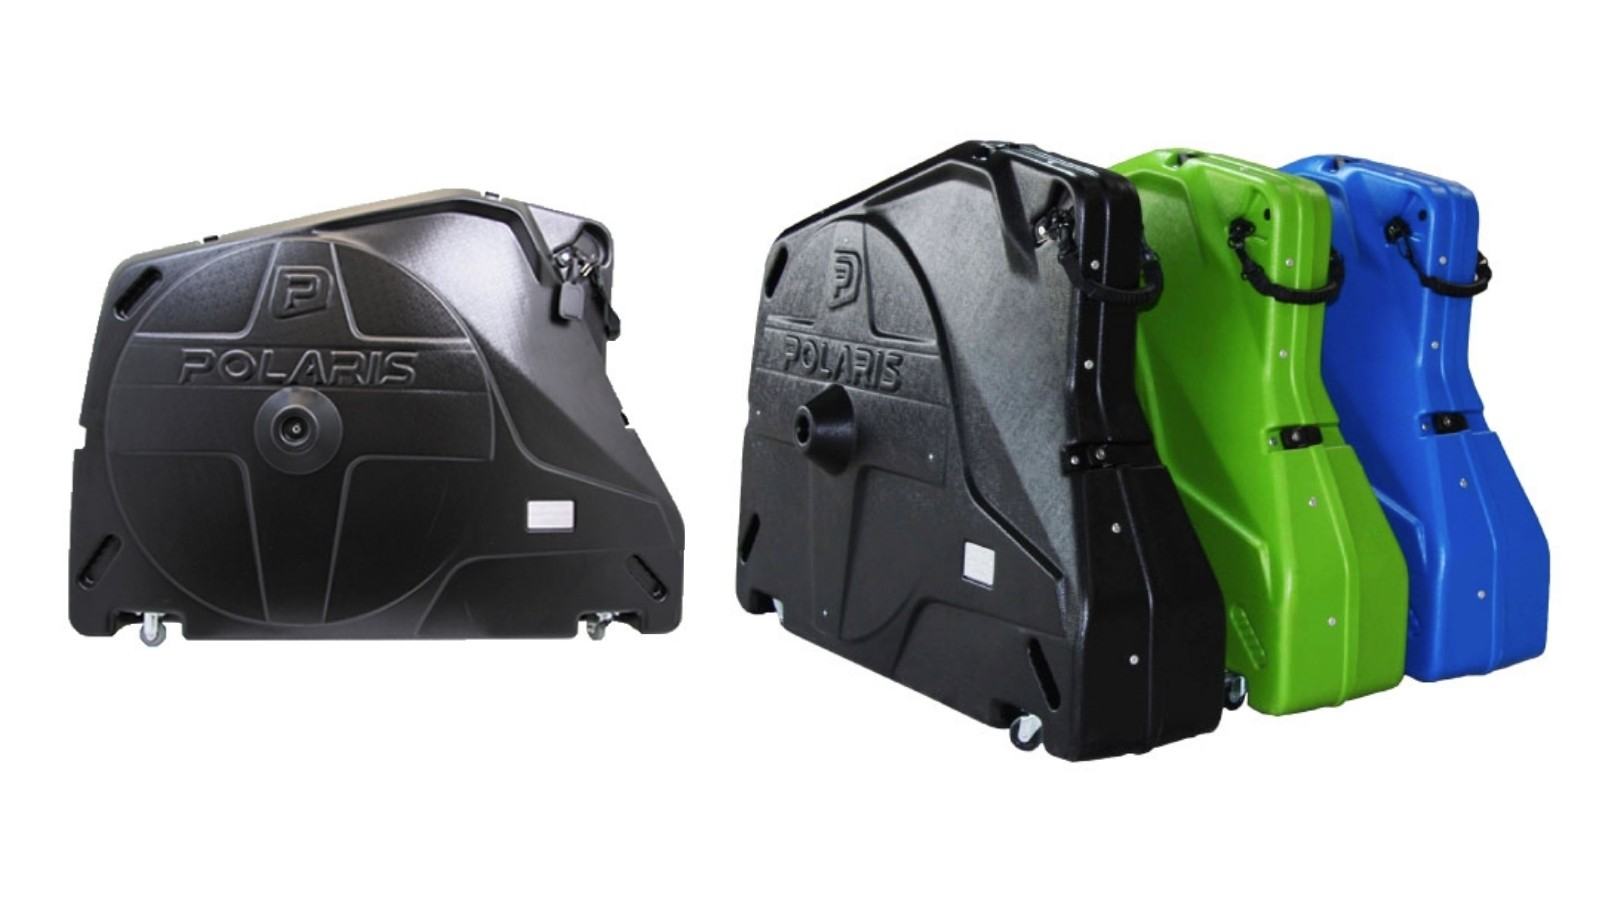 The Polaris Bike Pod Pro is supremely rigid and crack resistant